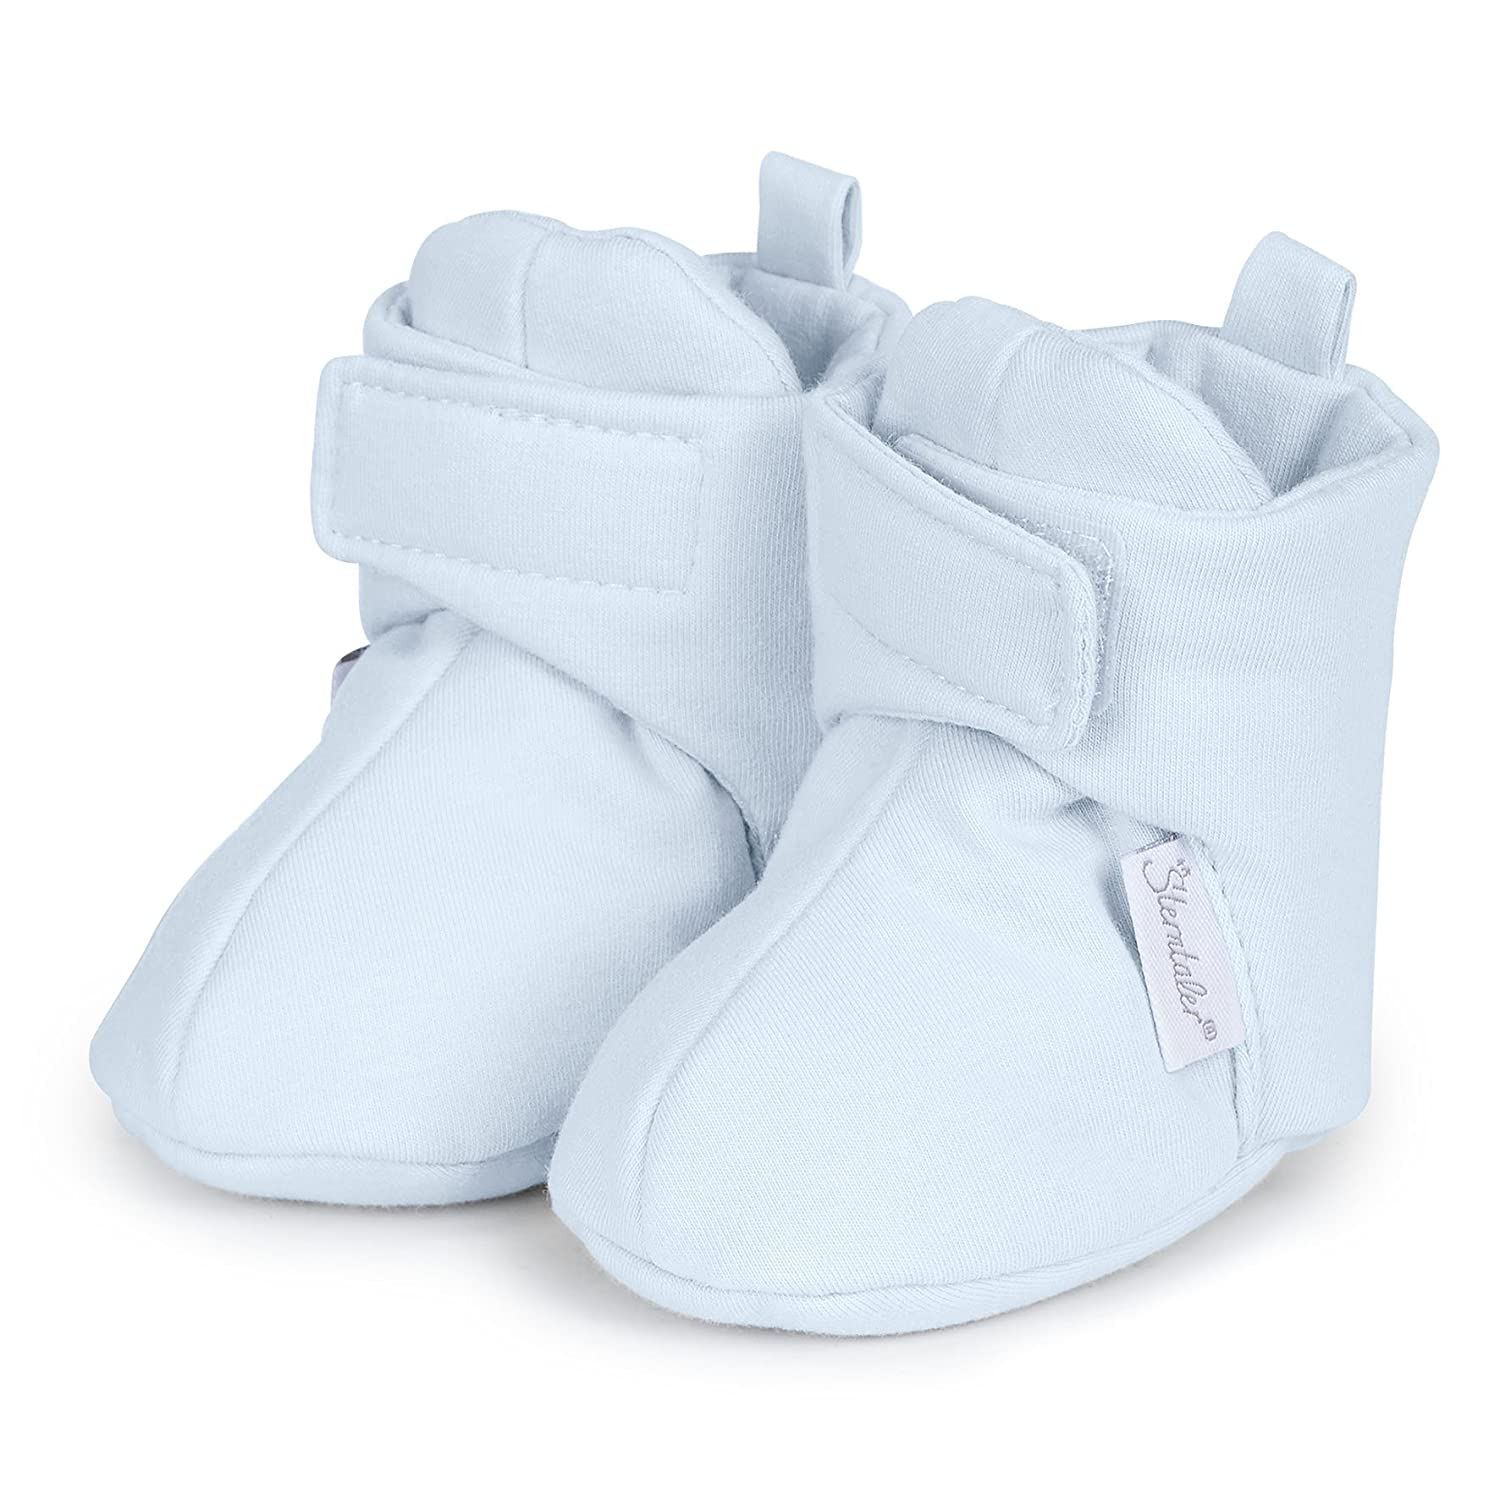 lowest price 4043d ad715 Sterntaler Baby-schuh, Baby Boys' Standing Baby: Amazon.co ...